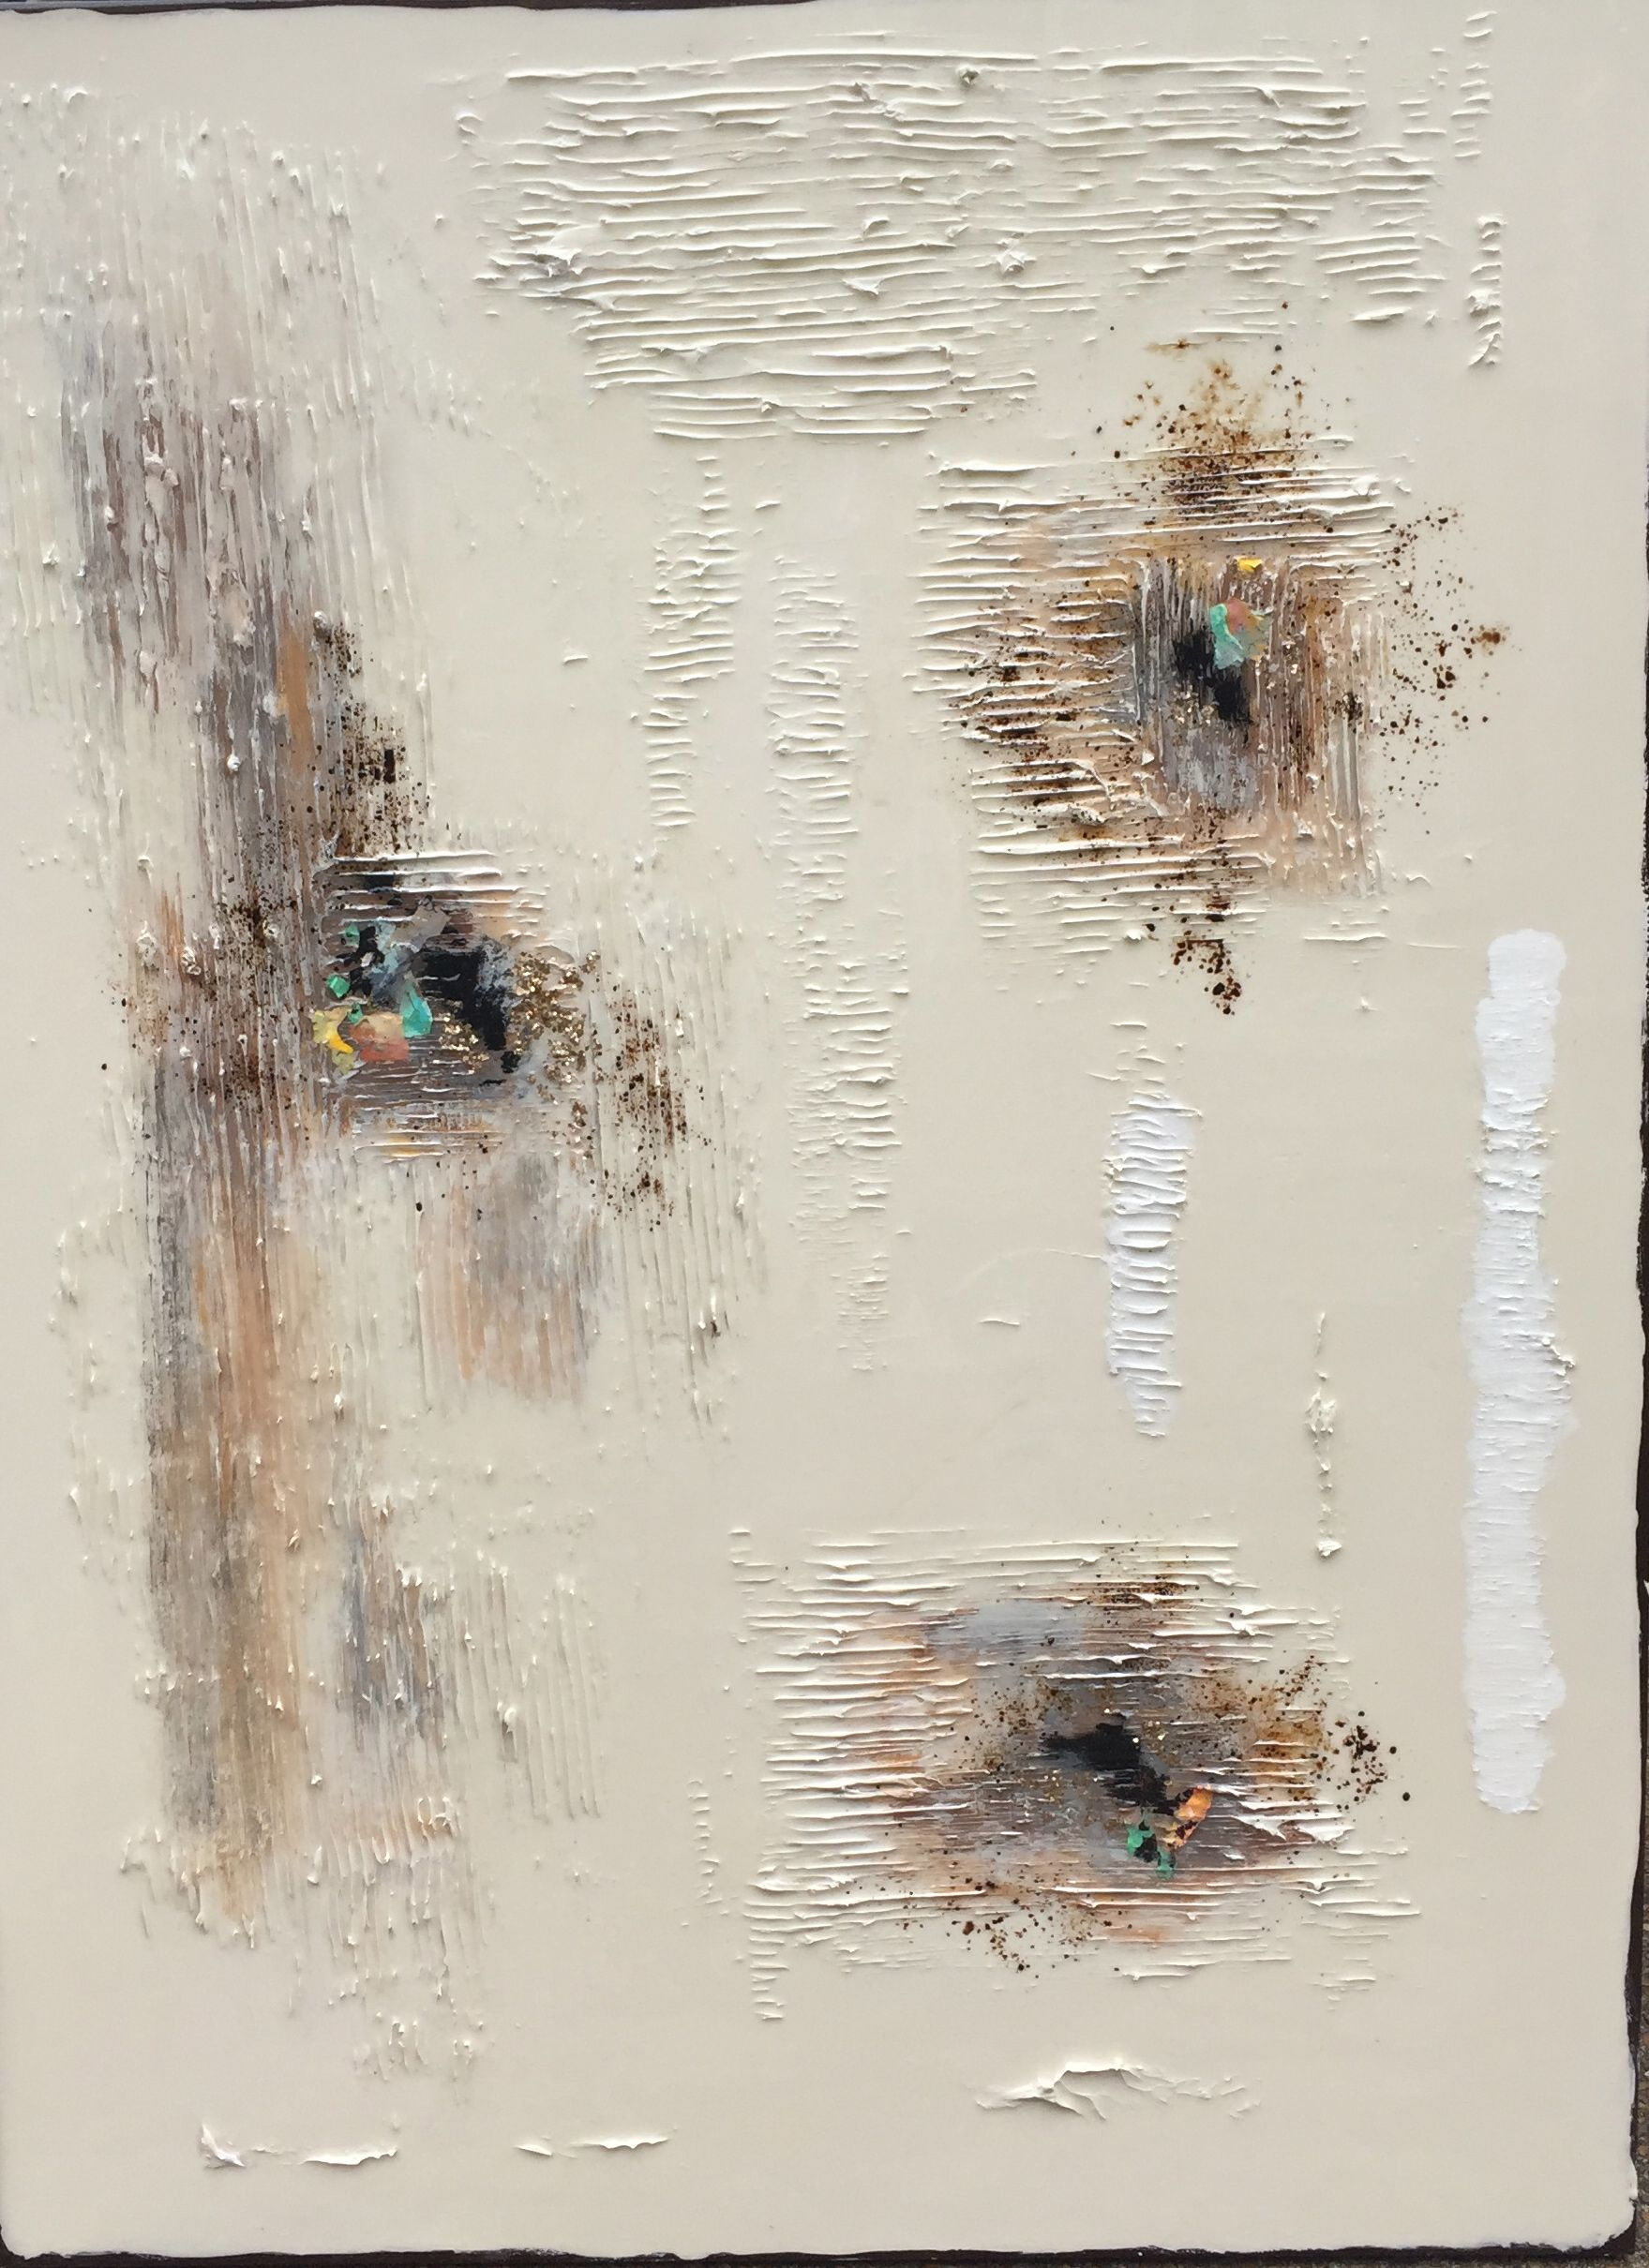 abstract by Paige Morehead….available at Red Bird Gallery in Seaside, FL